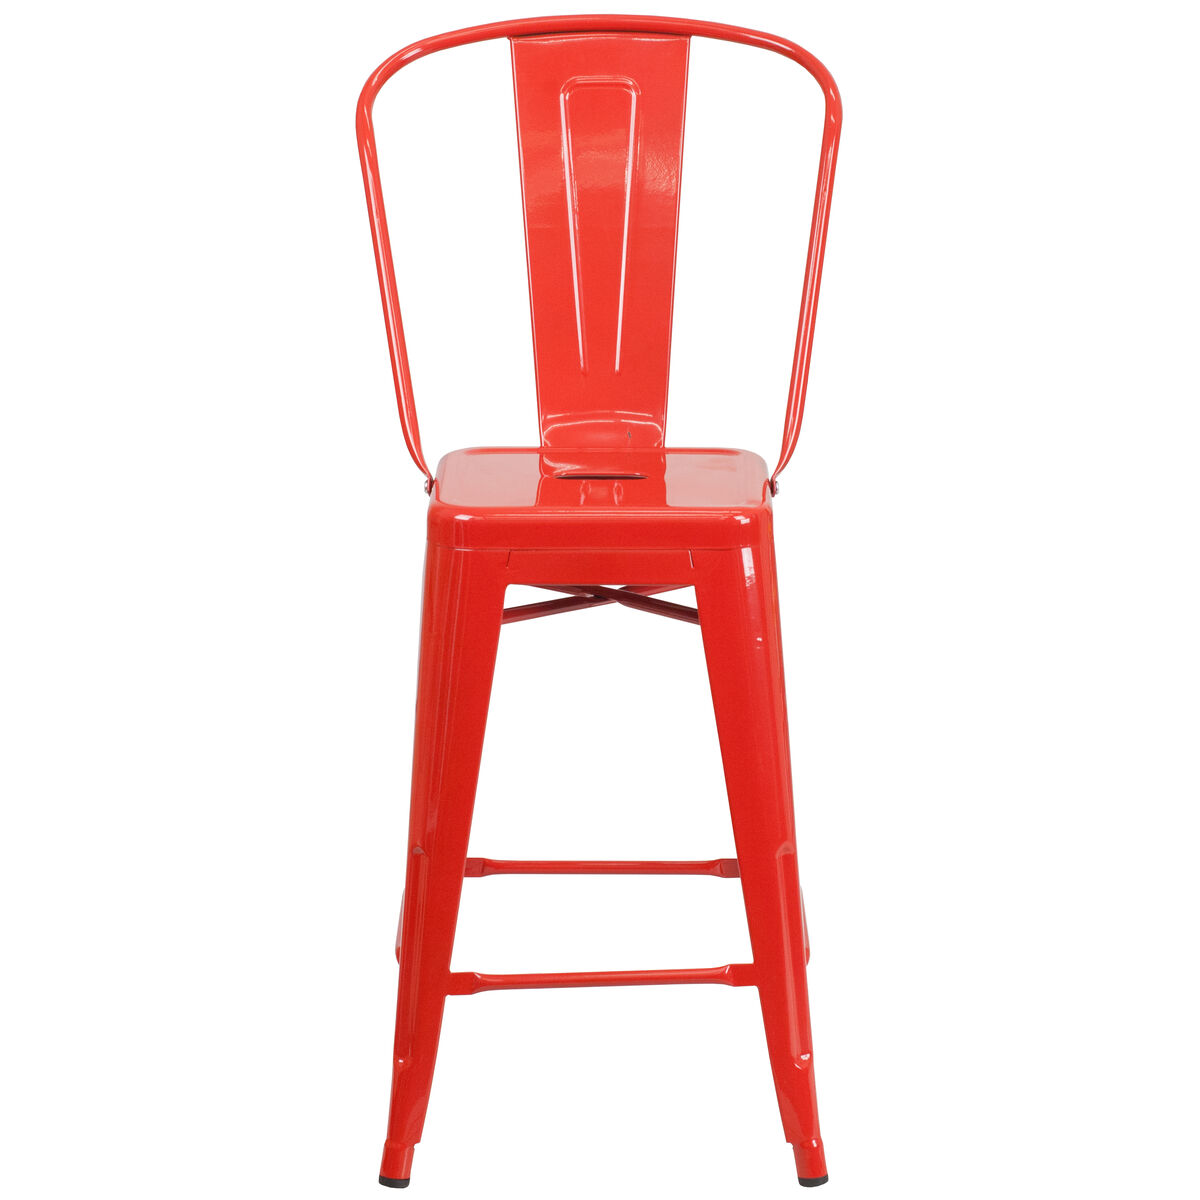 24 Quot Red Metal Outdoor Stool Ch 31320 24gb Red Gg